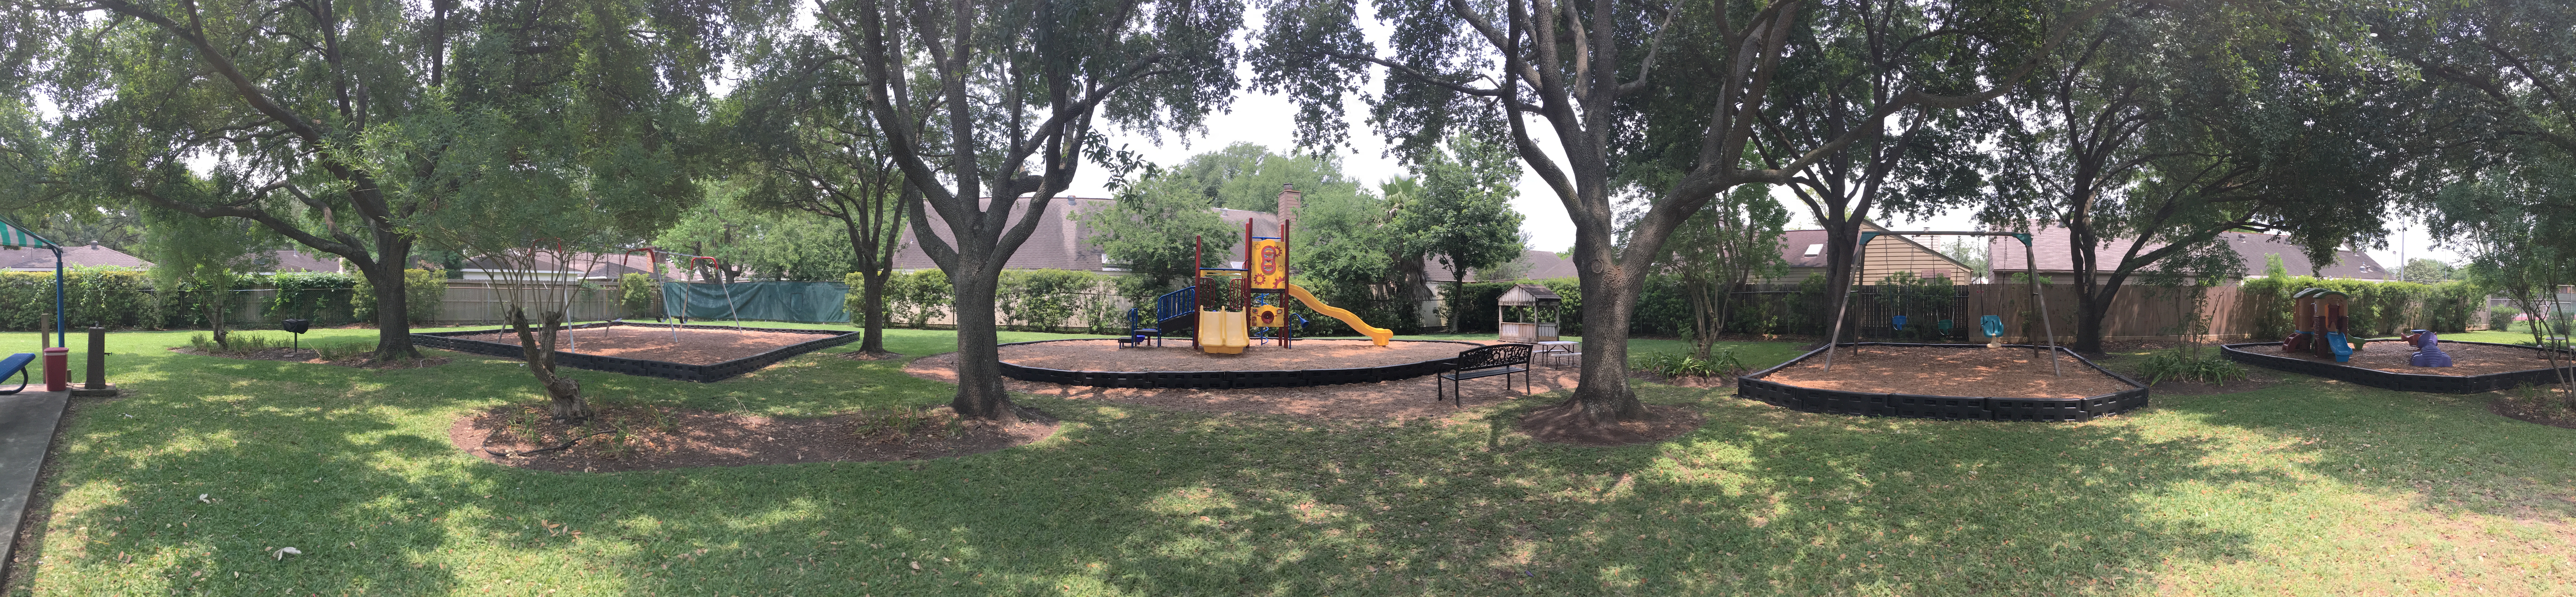 Pano play ground